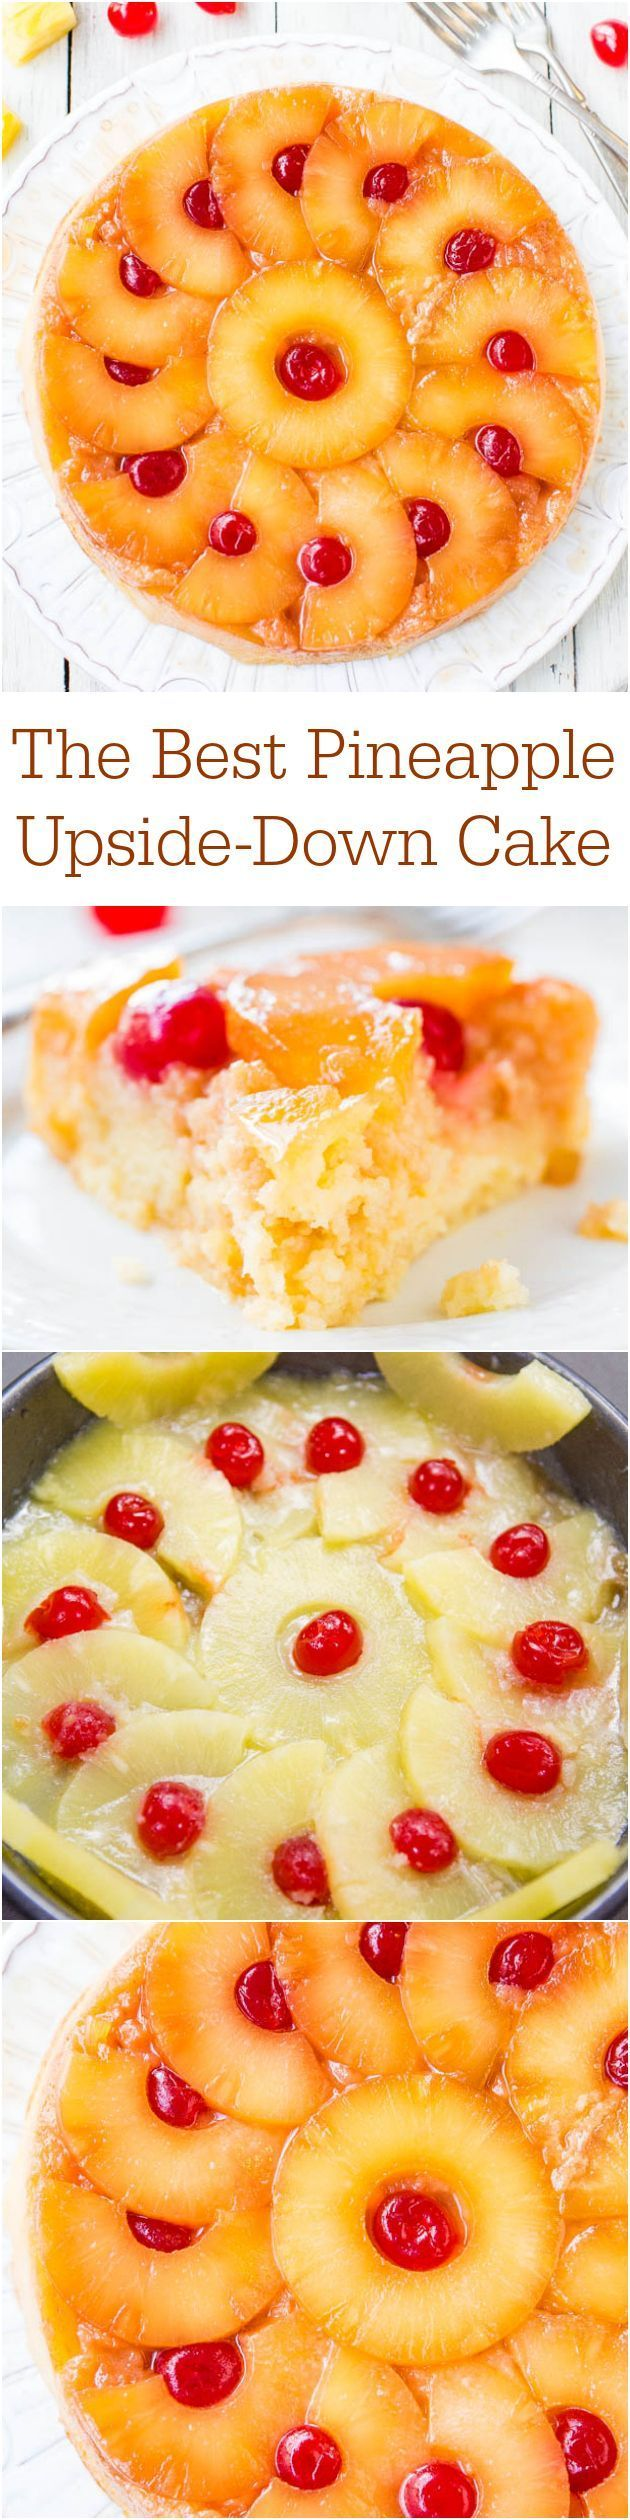 The Best Pineapple Upside-Down Cake - So soft, moist & really is The Best! A cheery, happy cake that's sure to put a smile on anyone's face!